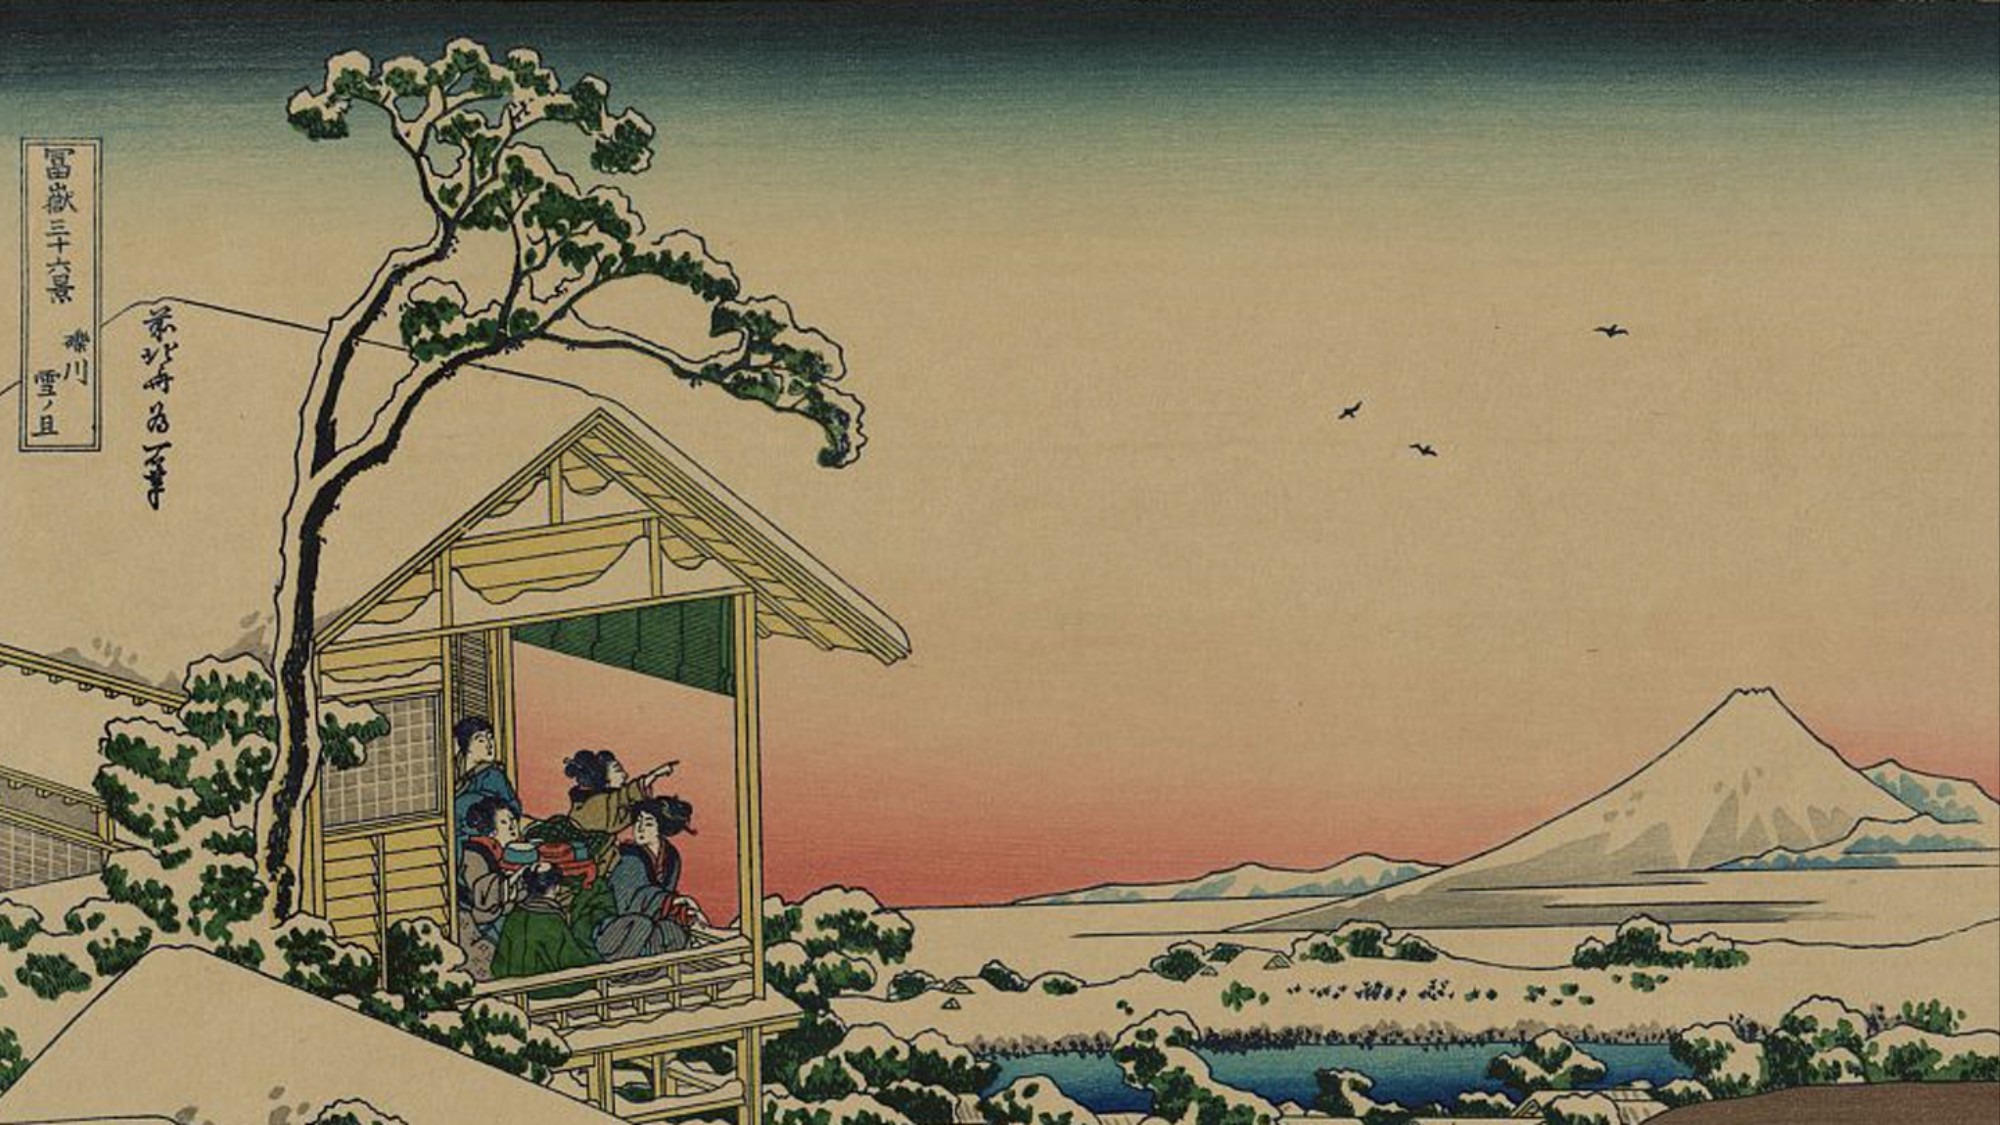 Now You Can Download 2,500 Japanese Woodblock Prints from